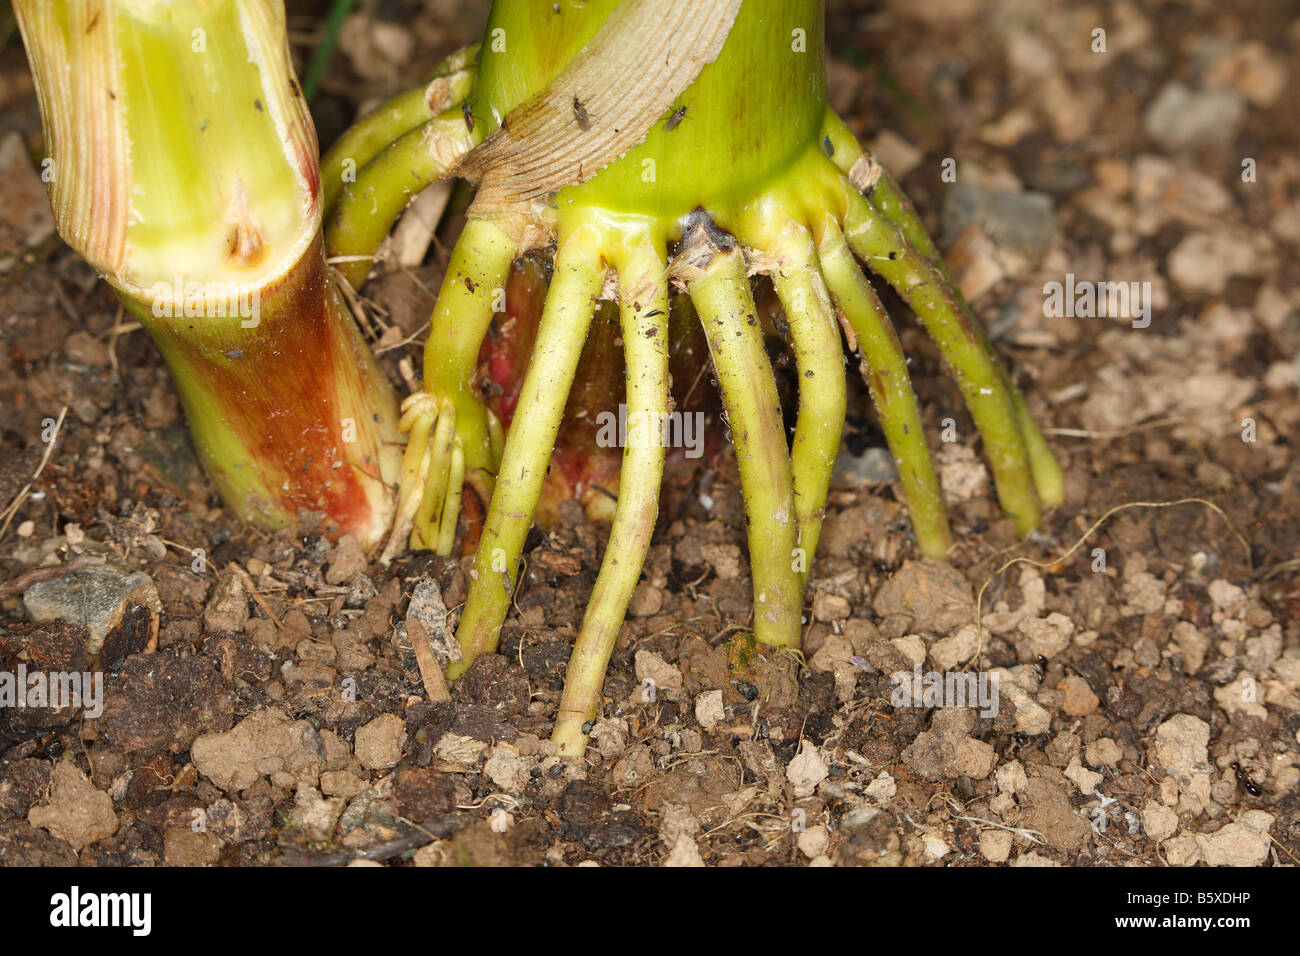 SWEETCORN PUTS OUT ADDITIONAL ARIEL ROOTS TO SUPPORT PLANT - Stock Image